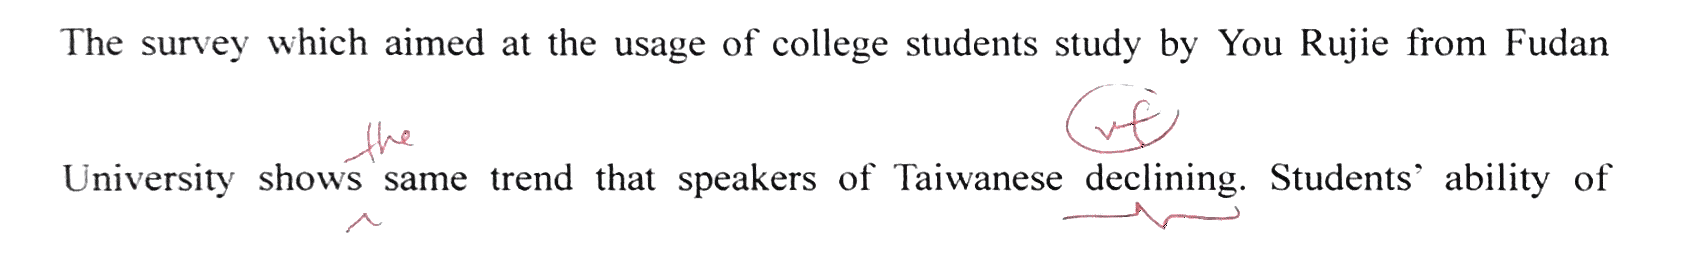 that speakers of Taiwanese  are declining